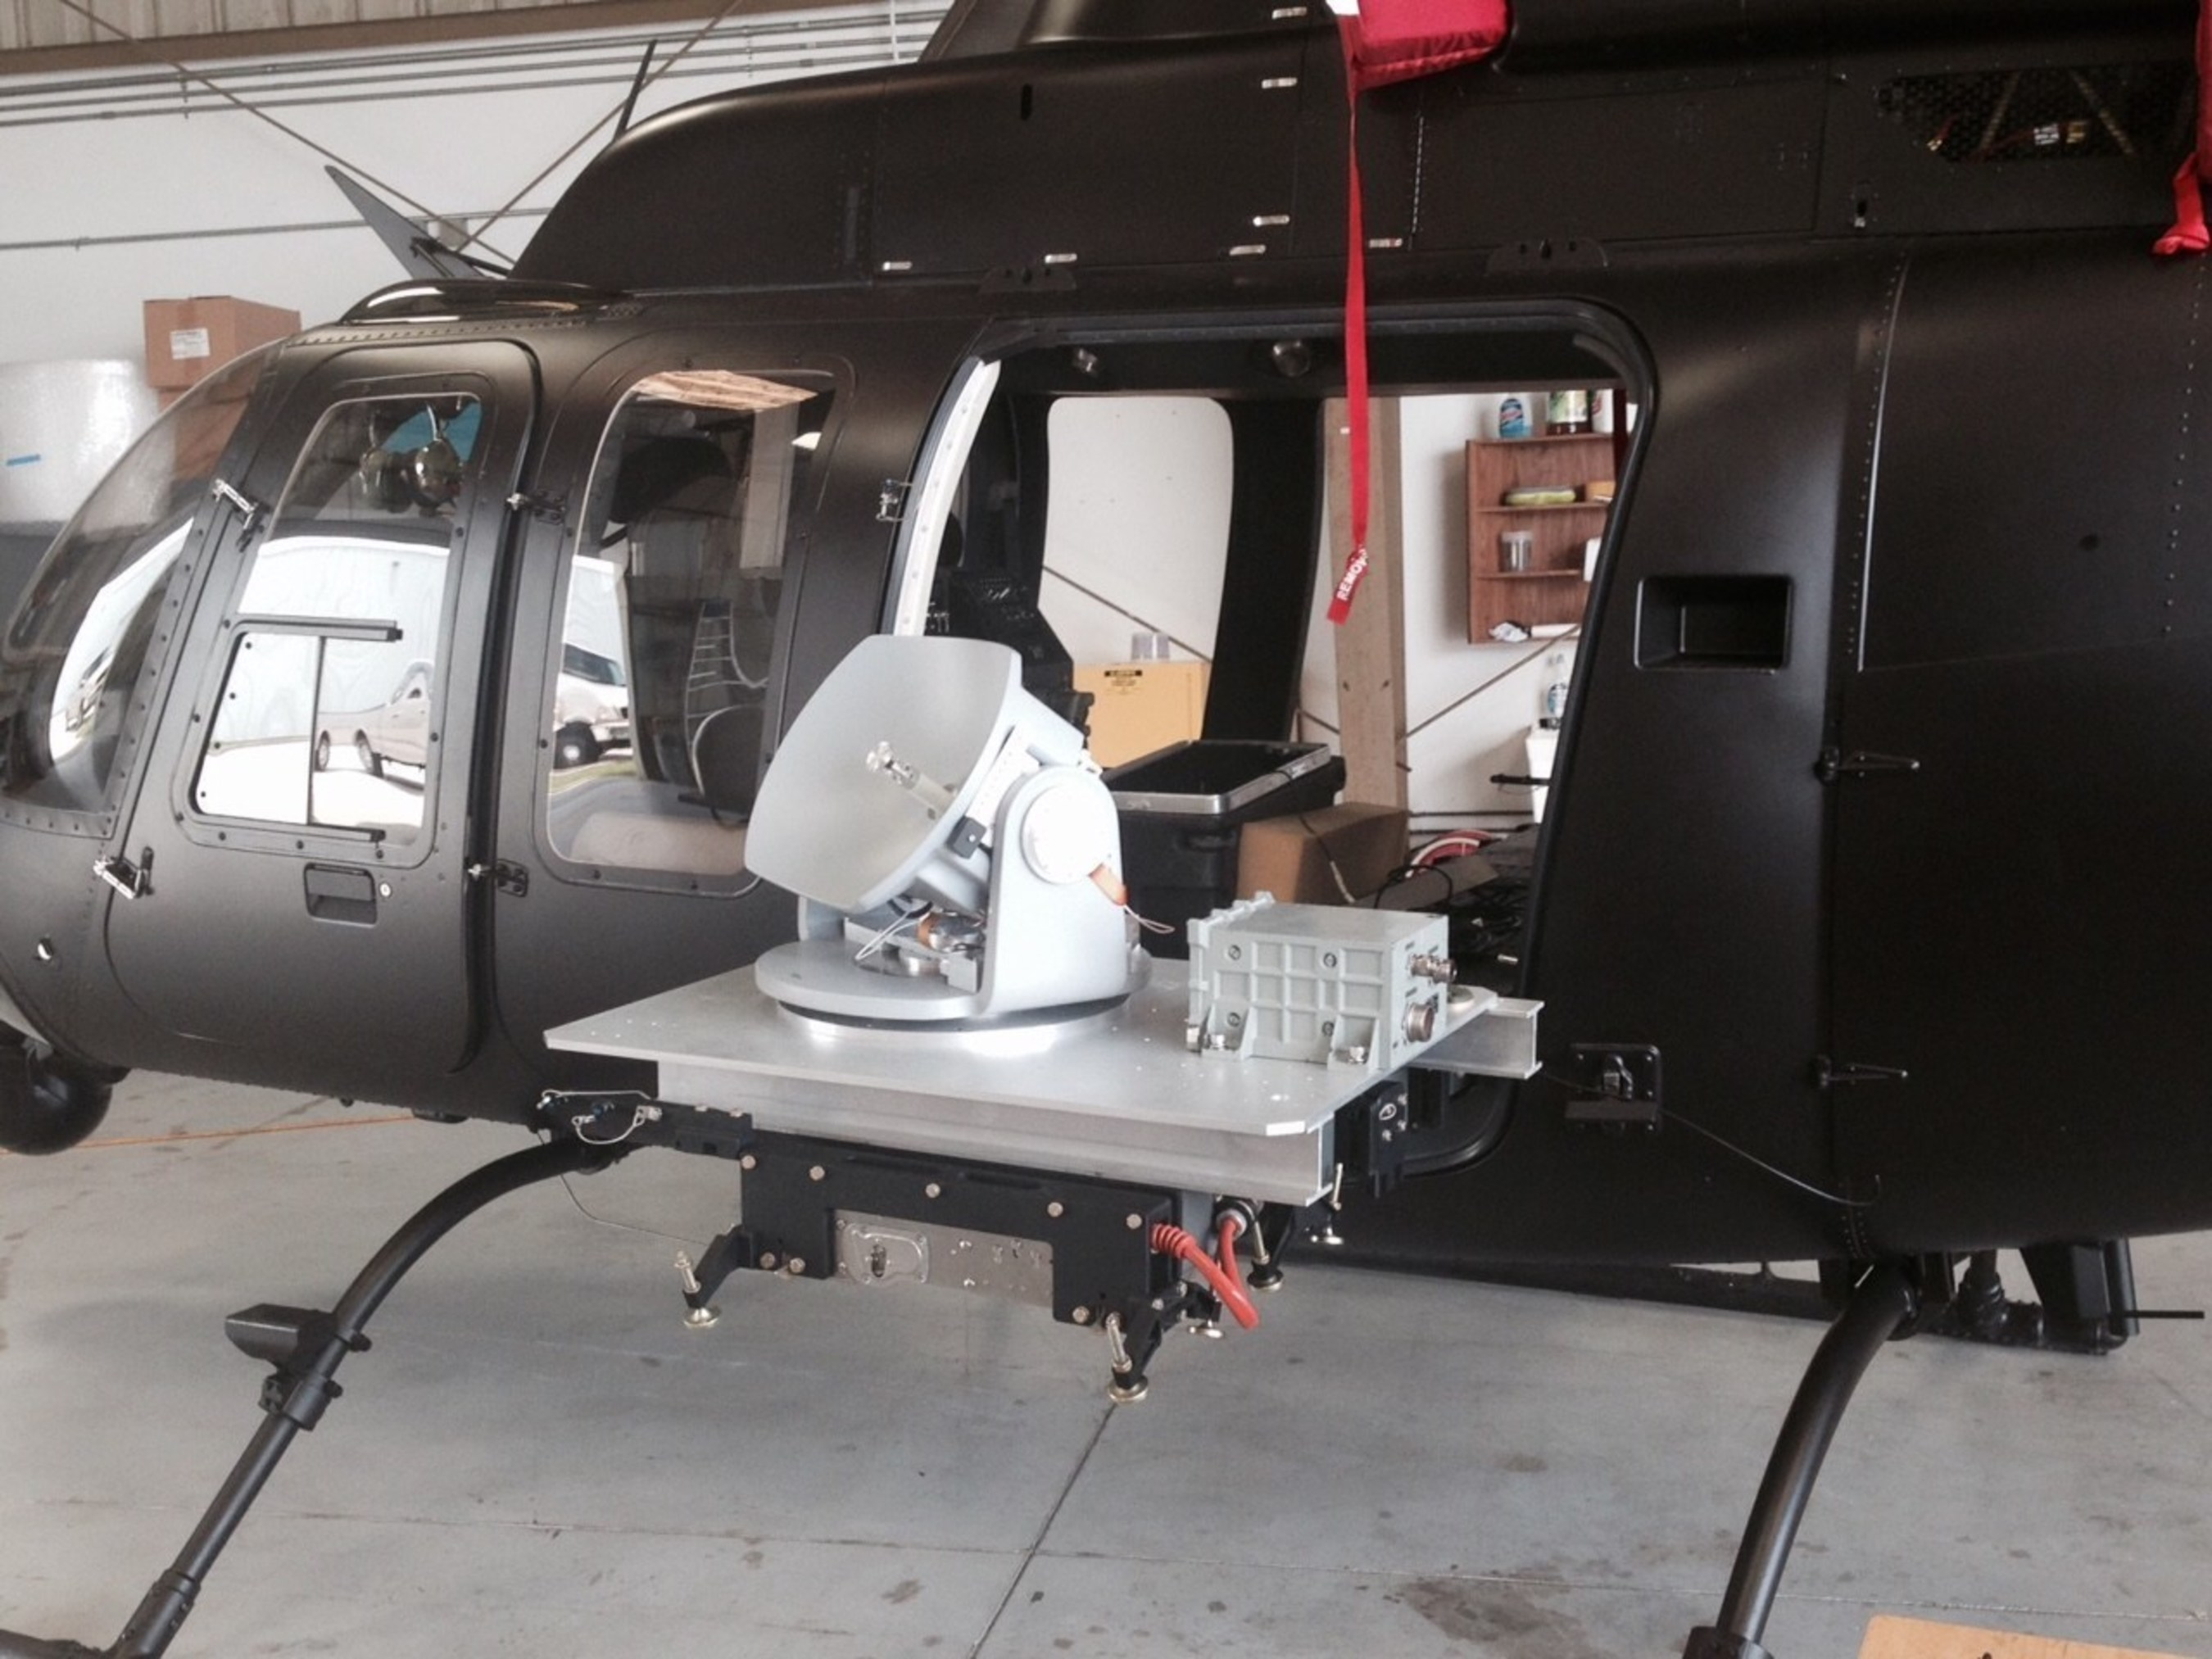 Hughes Demonstrates High Definition Video Over Satellite from Rotary Wing Aircraft